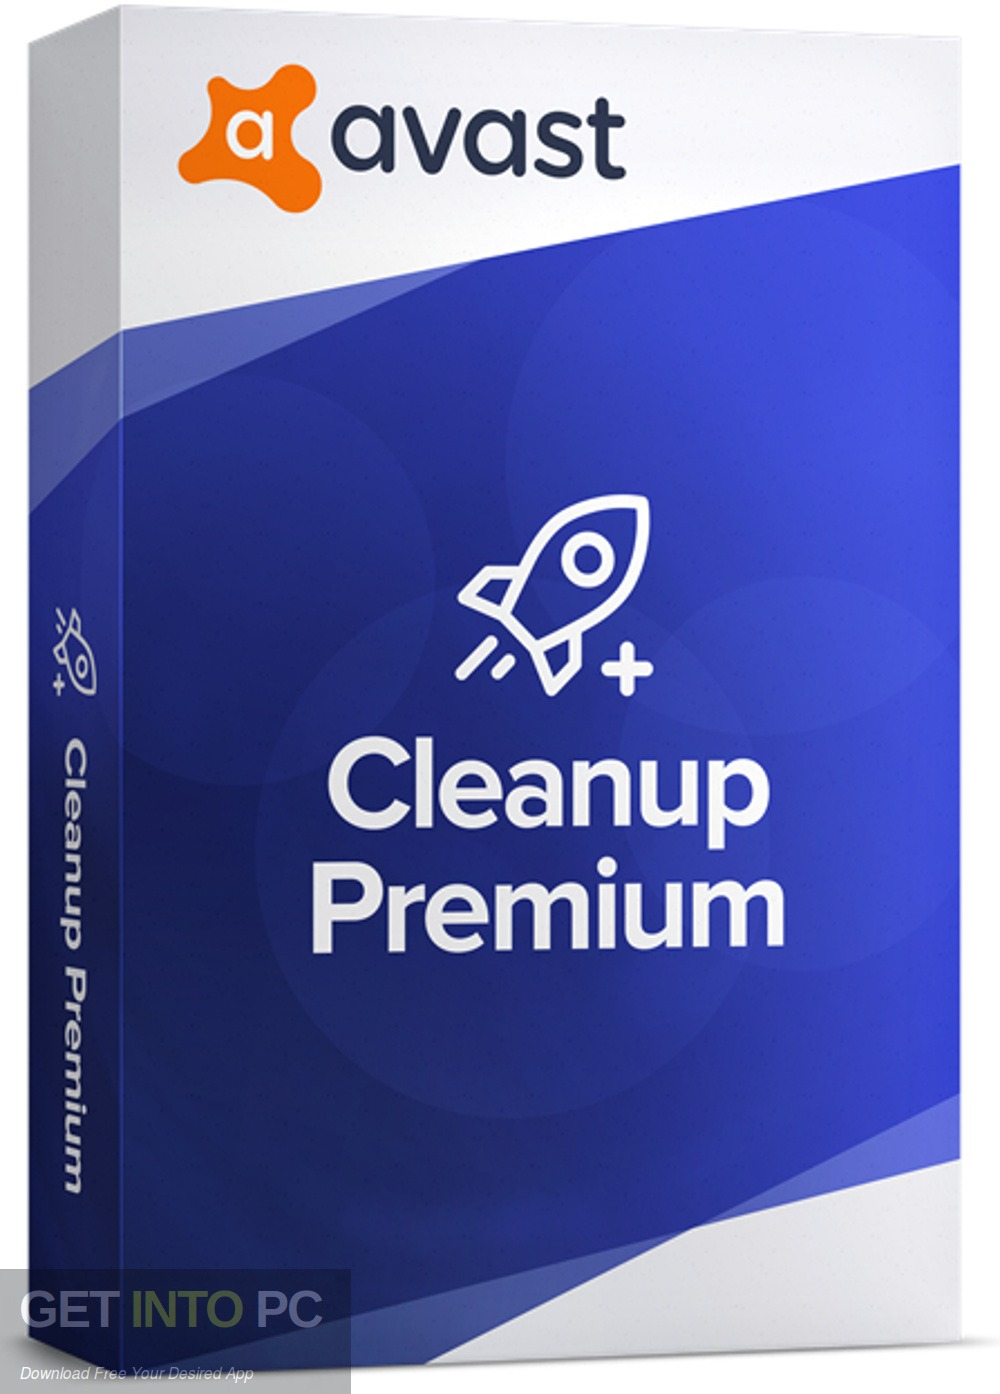 Avast Cleanup Premium 2018 Free Software for Download - GetInto.com